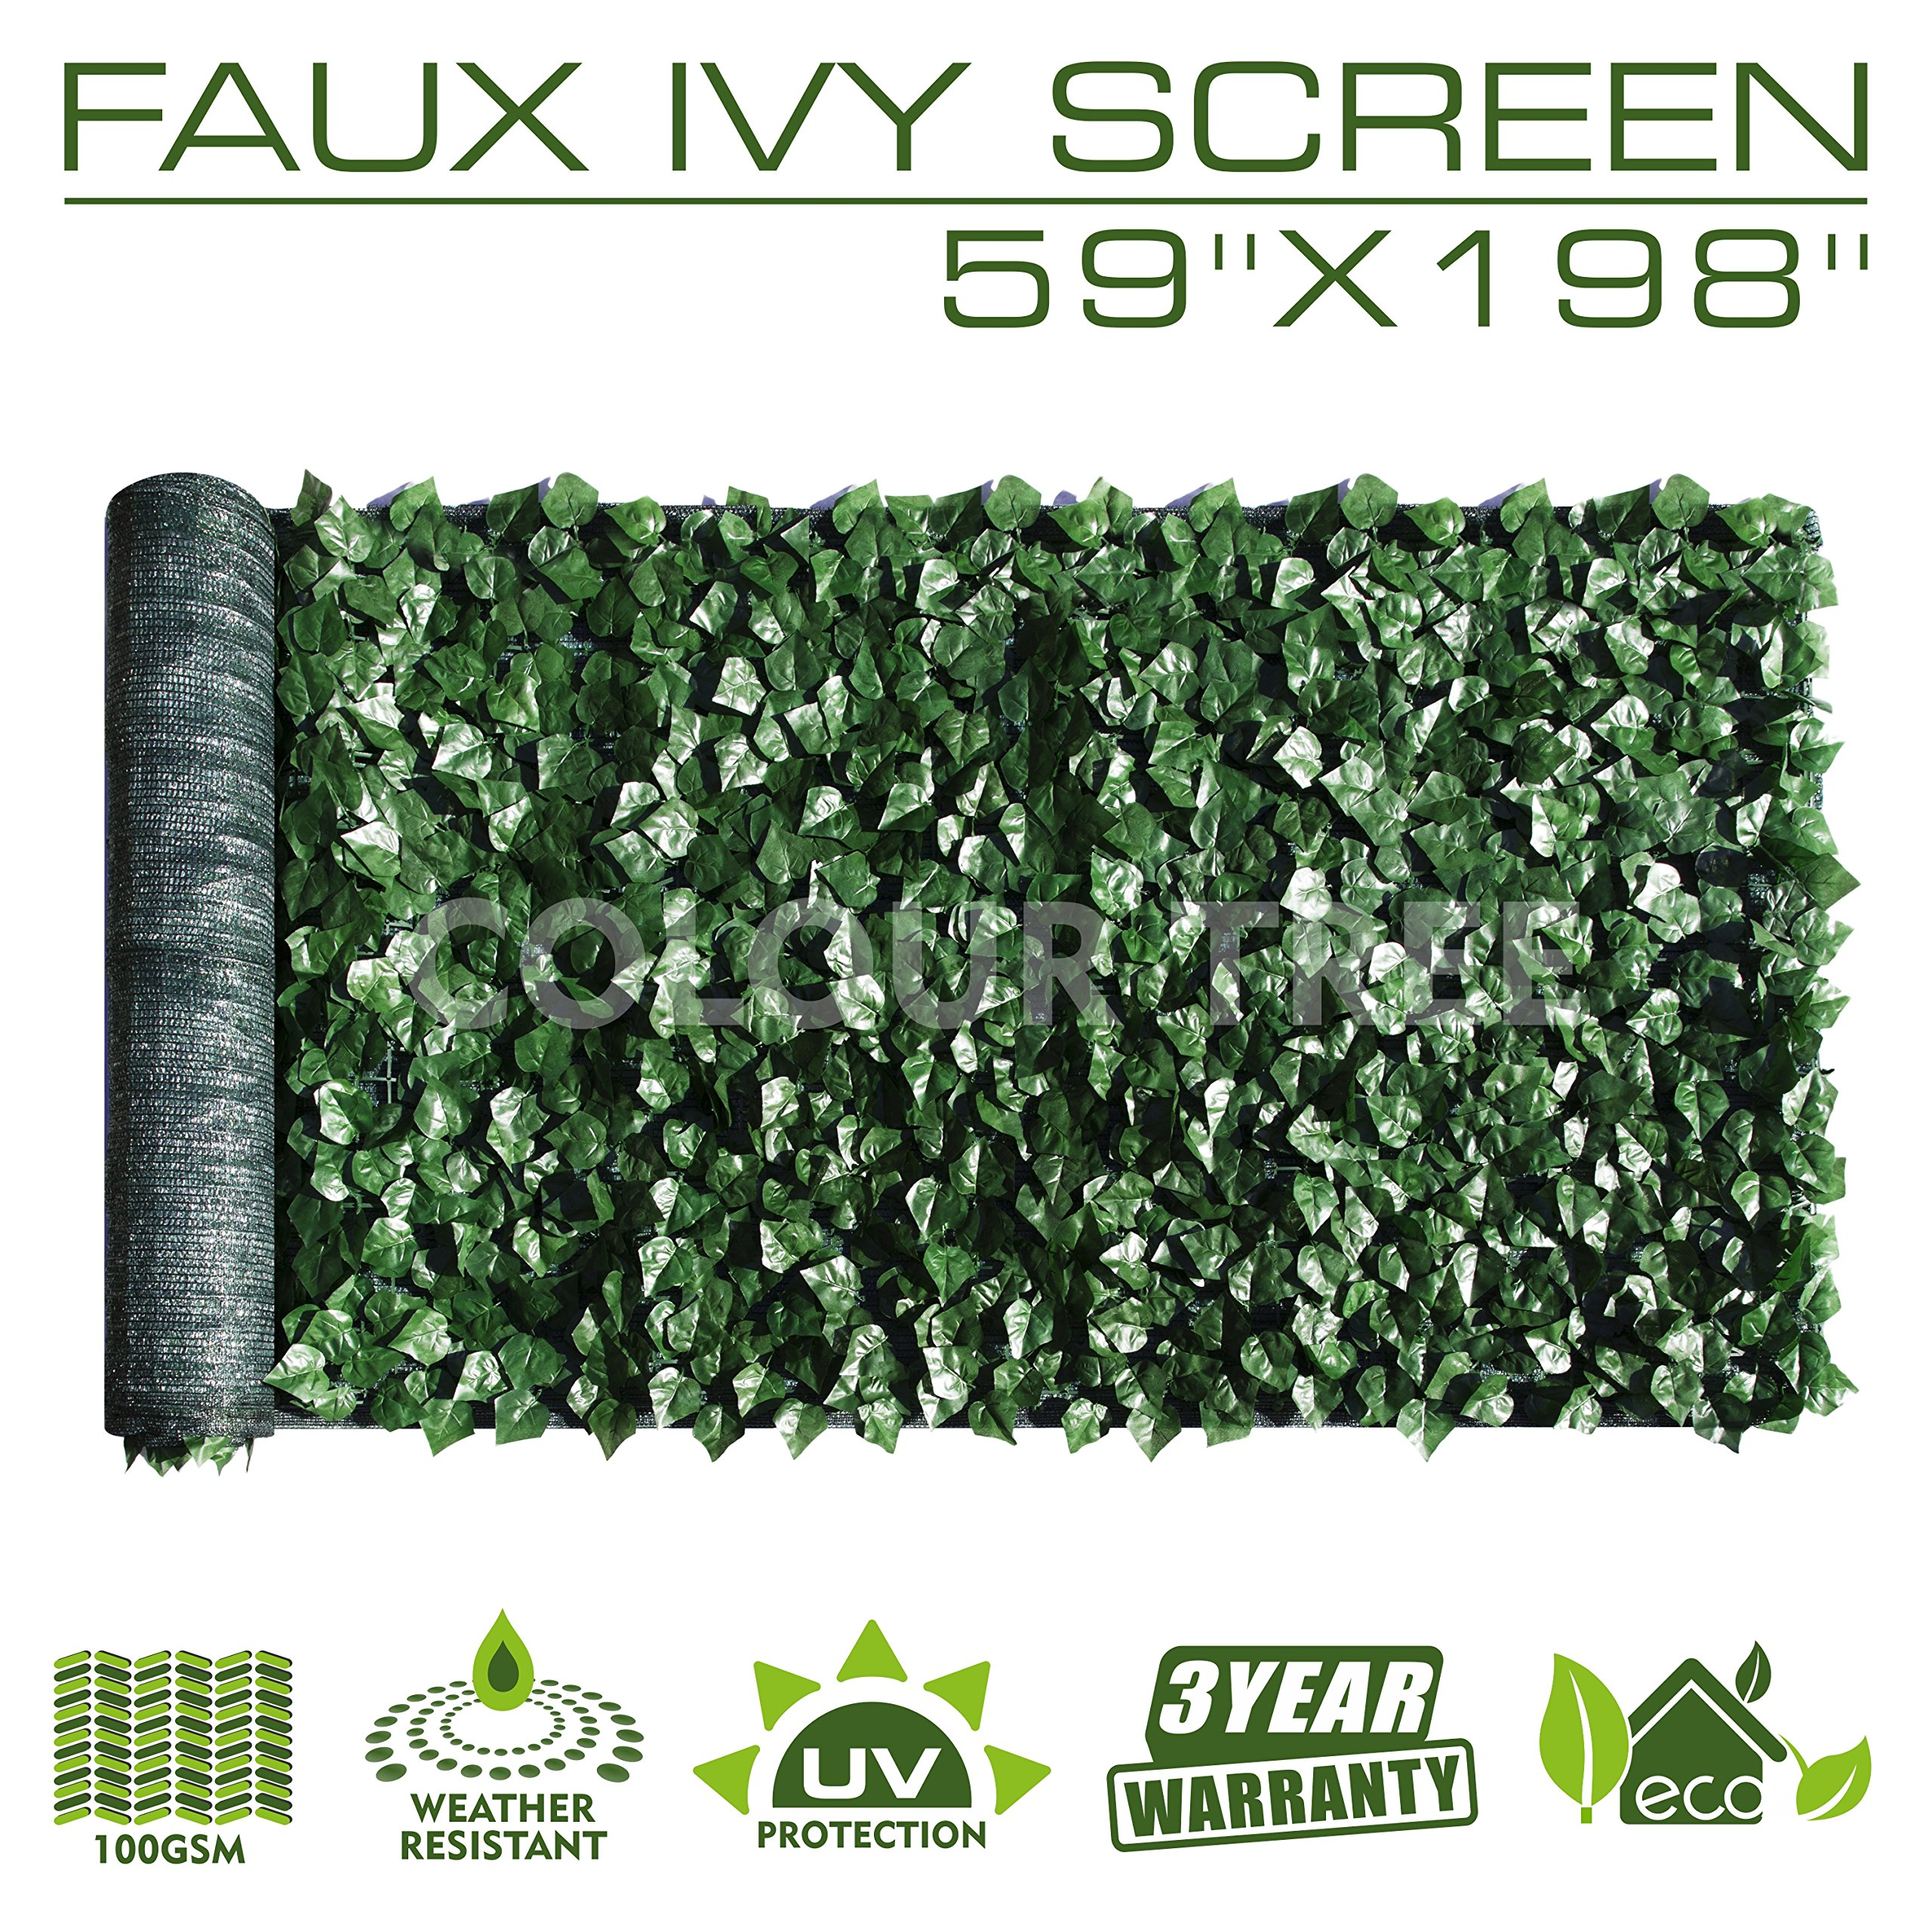 ColourTree Artificial Hedges Faux Ivy Leaves Fence Privacy Screen Panels Decorative Trellis - Mesh Backing - 3 Years Full Warranty (59'' x 198'')